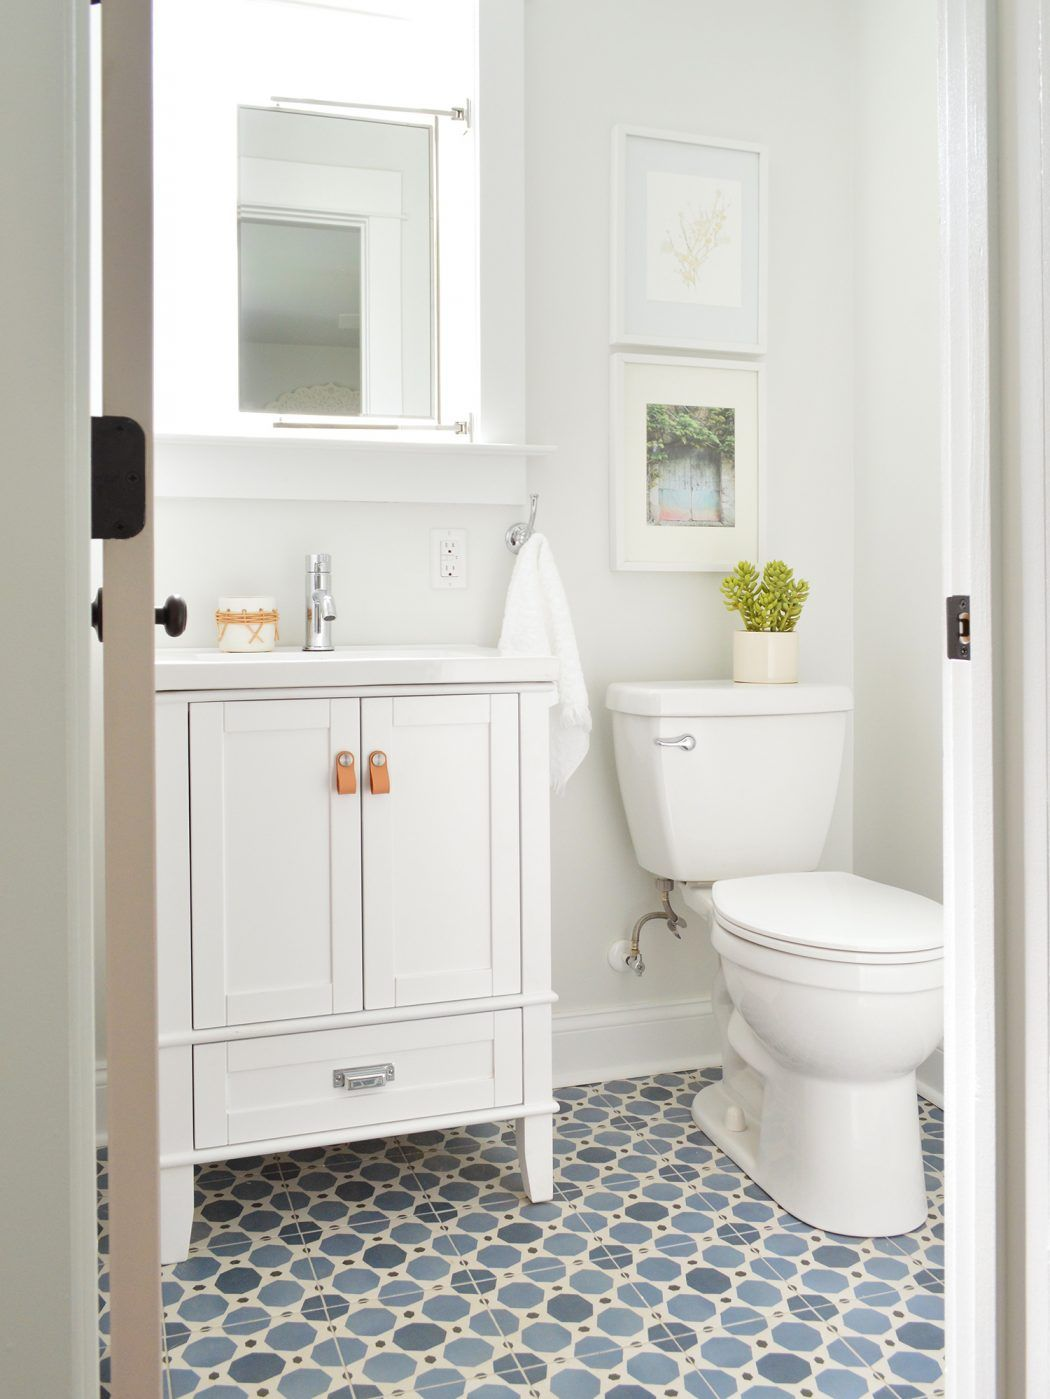 Four More Finished Spaces At The Duplex, Young House Love Bathroom